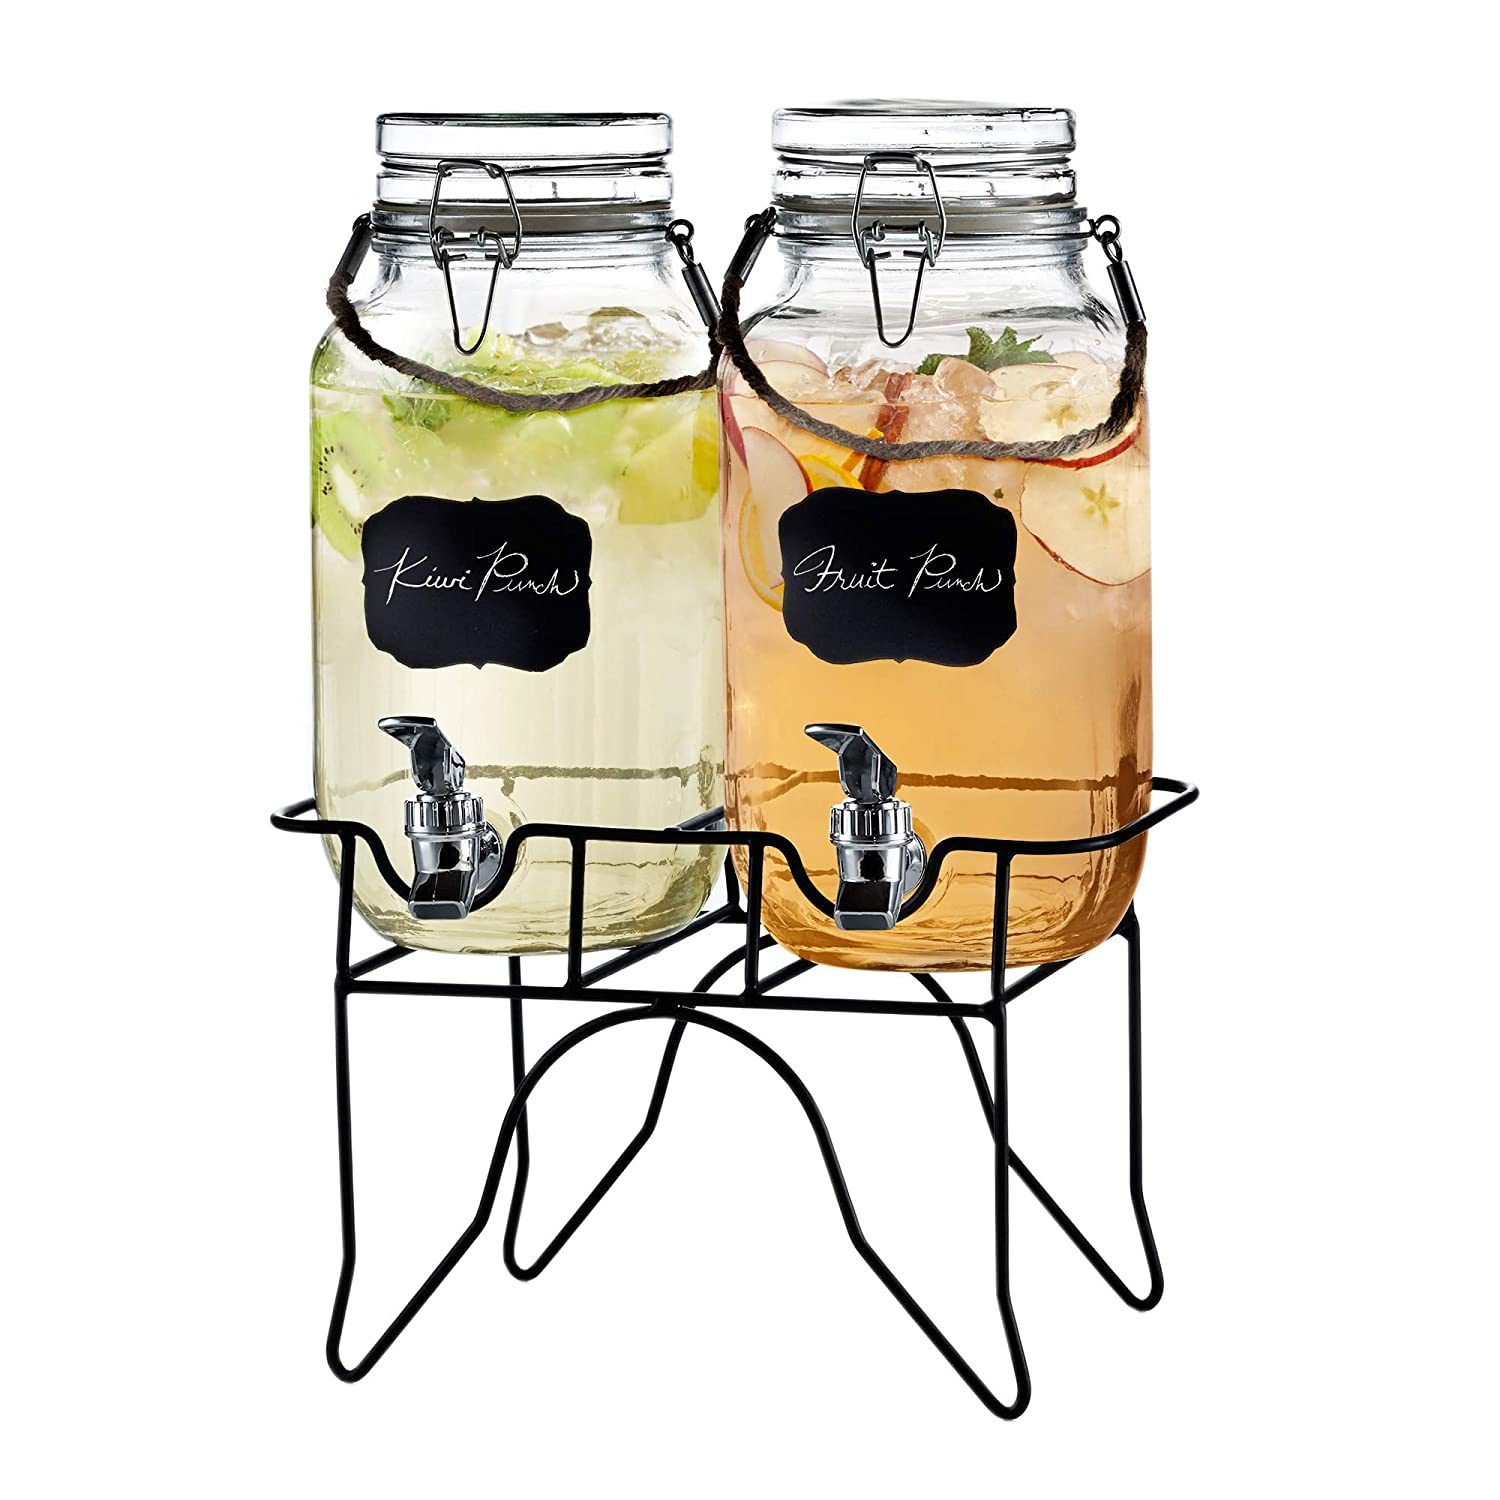 Style Setter Newcastle 210255-2GB 1 Gallon Each Glass Beverage Drink Dispenser Set with Metal Stand & Rope Handle, 14x10x17, Clear The Jay Companies